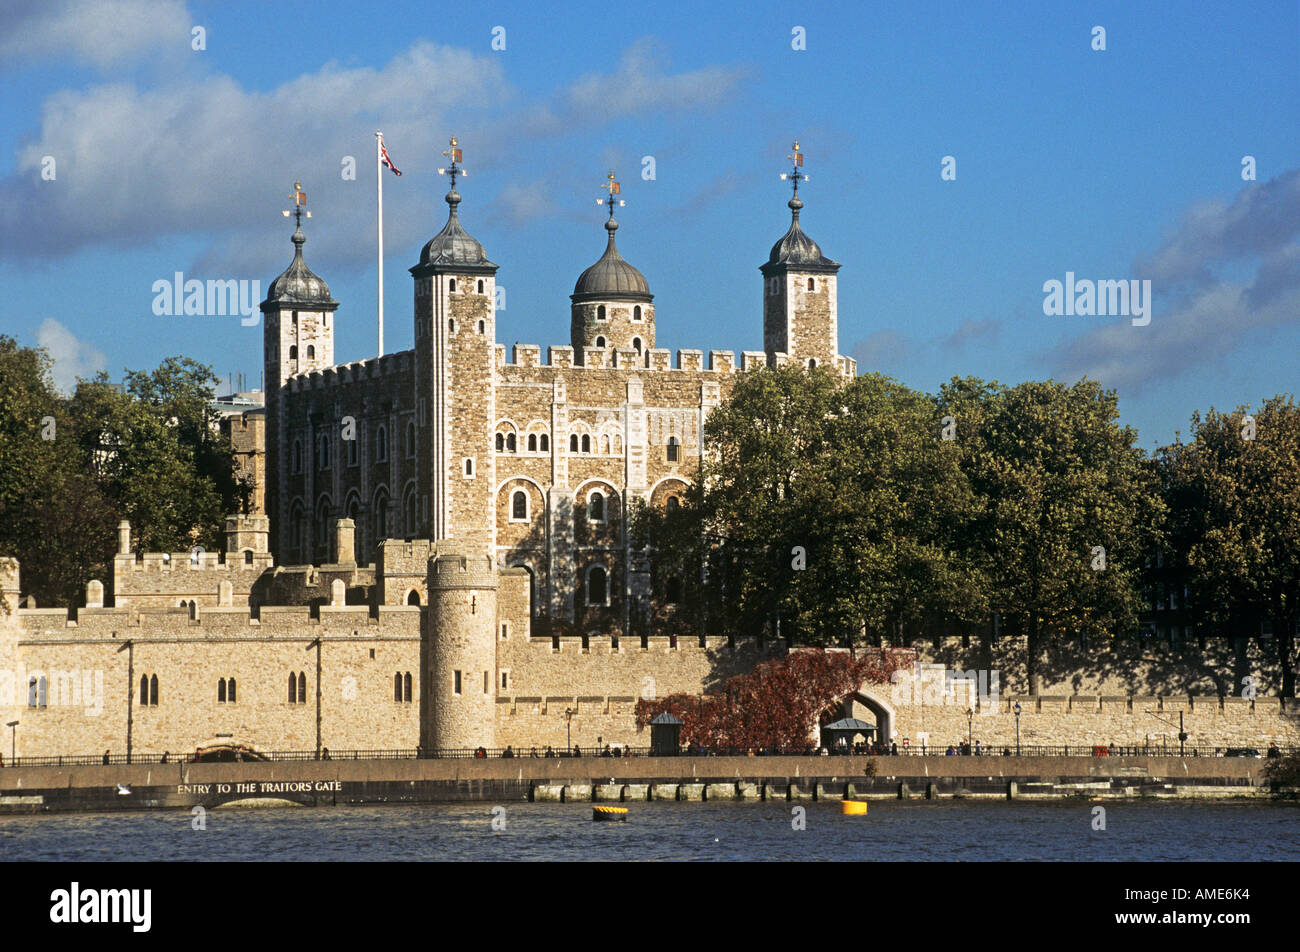 The Tower of London seen across the River Thames Executions of some of Henry VIIIs wives and figures such as Sir Thomas Moore and Sir Walter Raleigh were held prisoners here - Stock Image